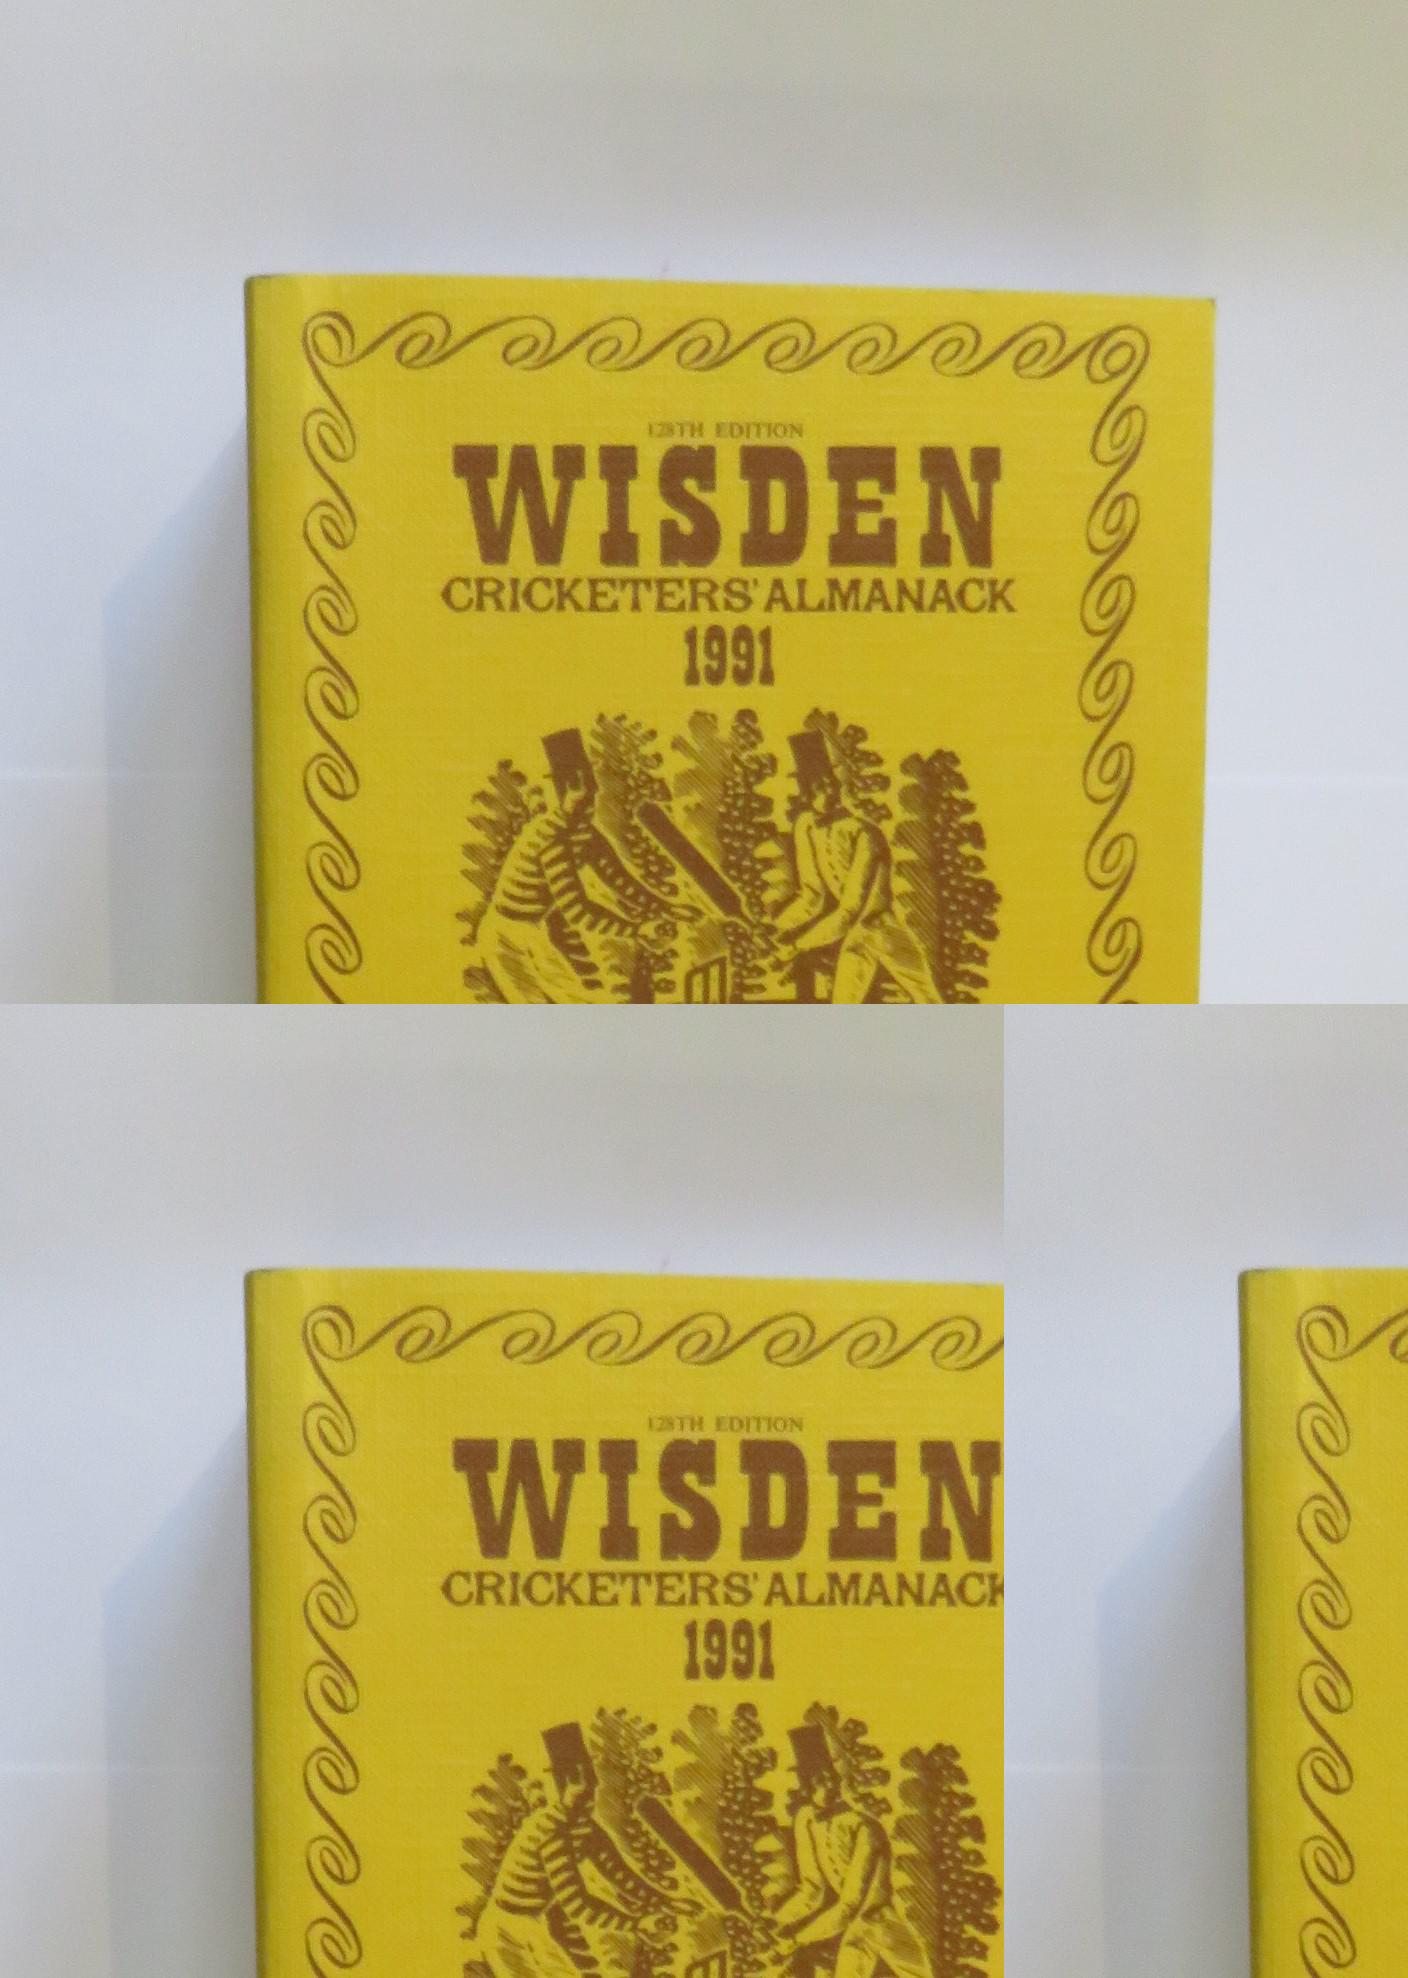 Wisden Cricketers' Almanack 1991